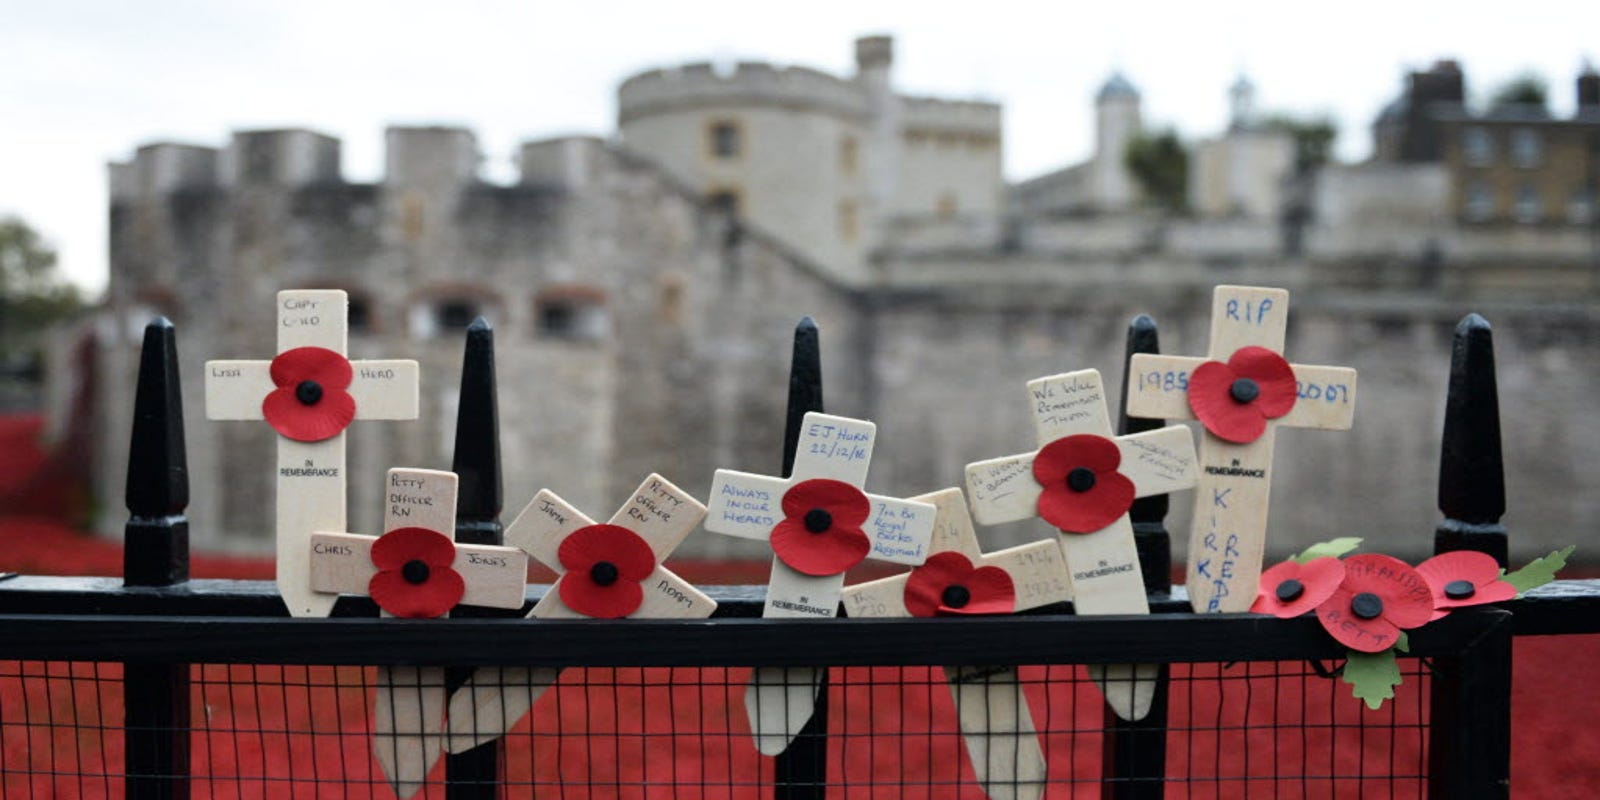 How The Poppy Became The Symbol Of Sacrifice